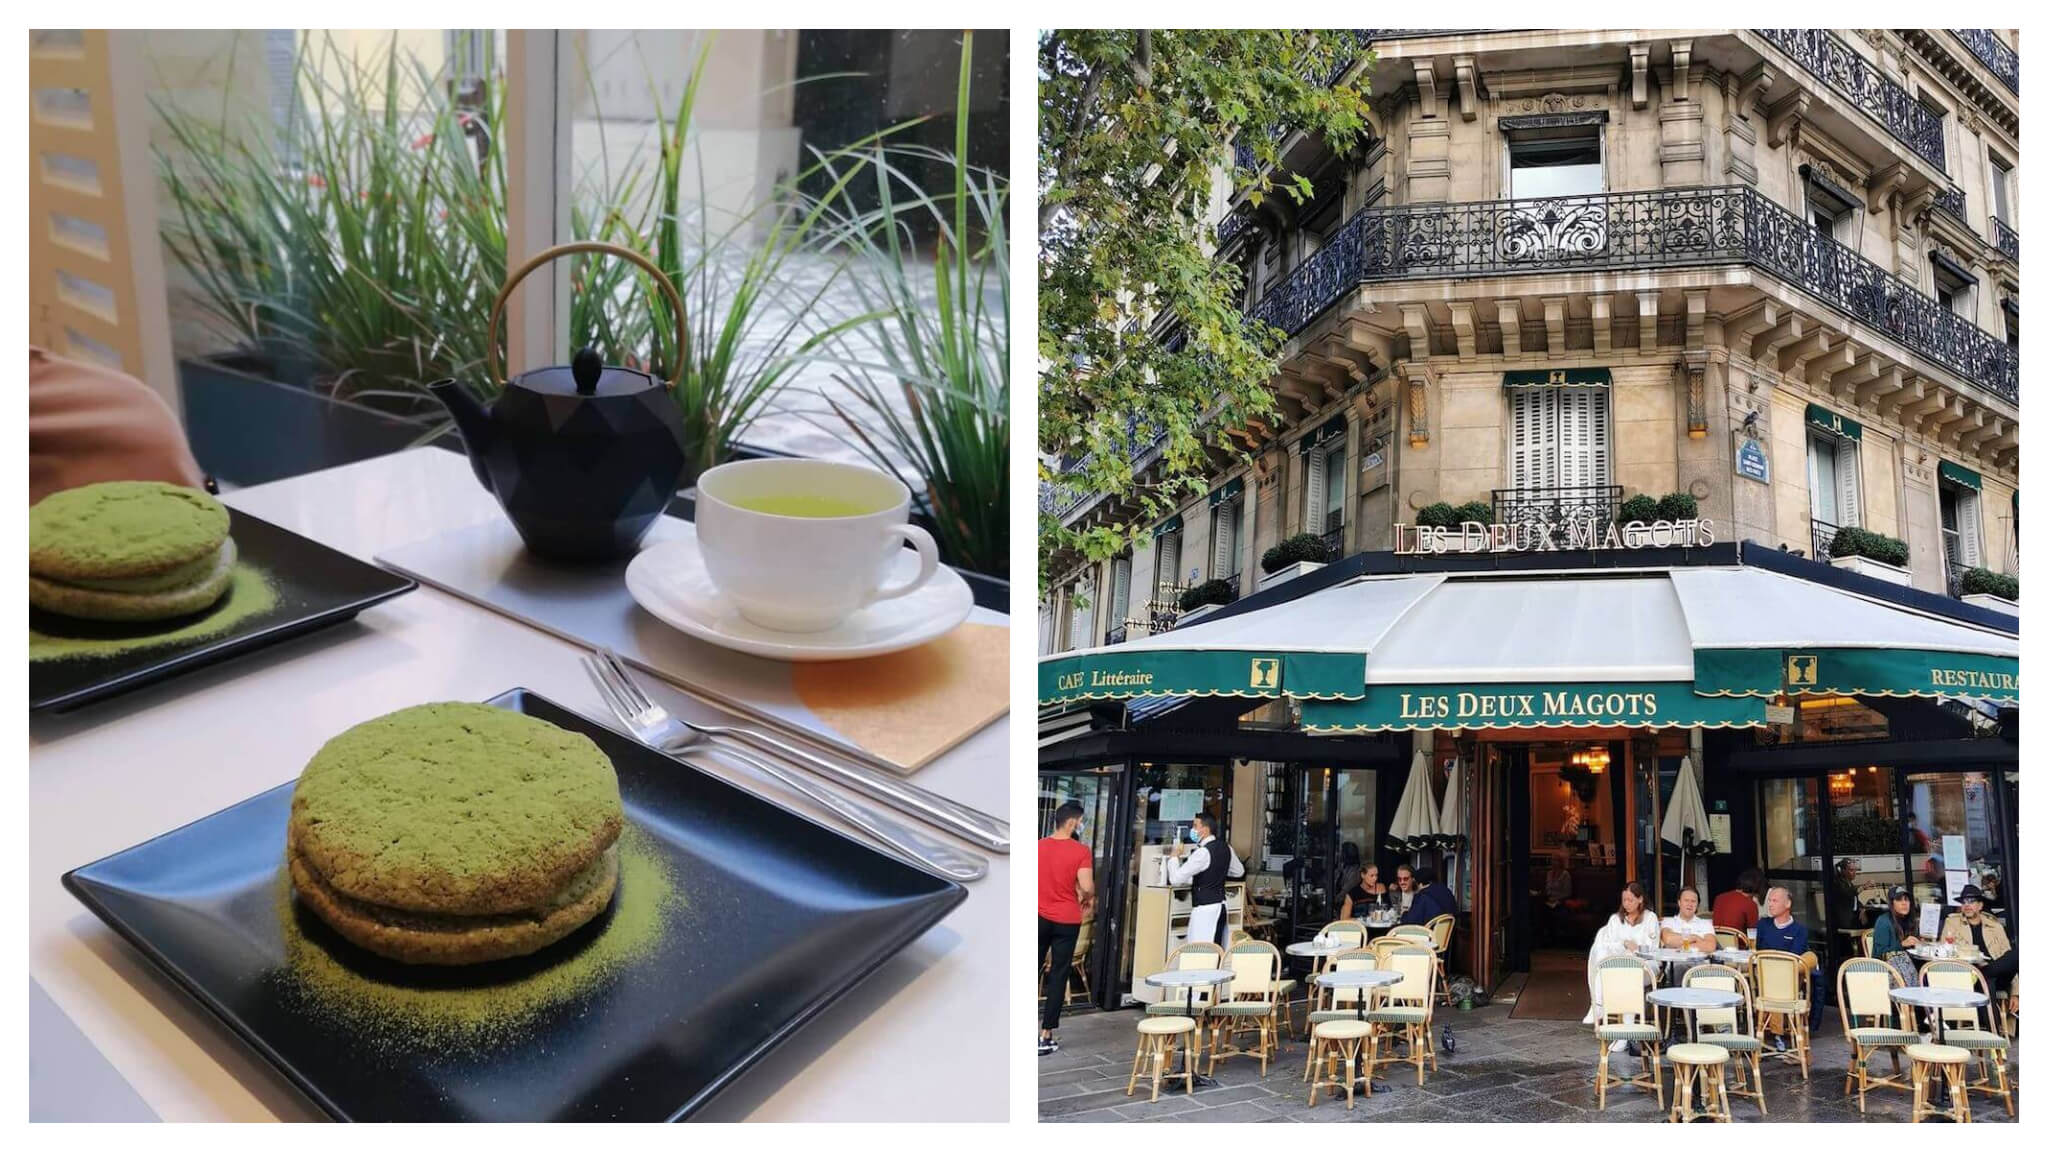 Left: A white table with two black plates with green matcha cakes on them. There is a black tea kettle and a white tea cup and saucer on the table. Right: An old Parisian building that is the exterior of Les Deux Magots café. There is a green and white awning with the name of the café in gold and there are several tables and chairs with people sitting at them.